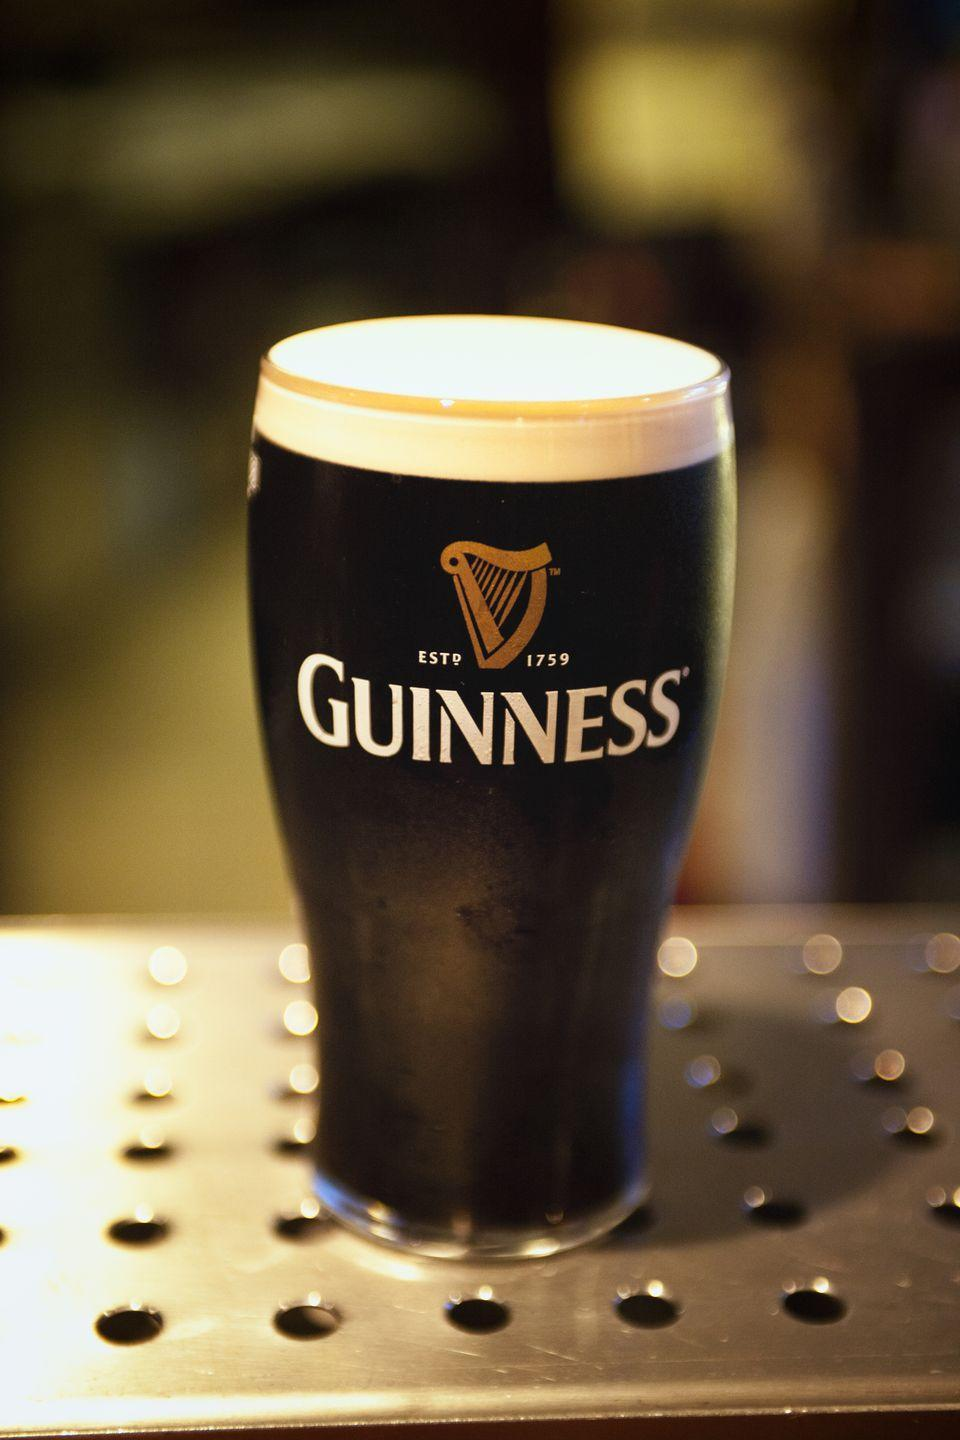 """<p>The thick, rich Irish dry stout is a must-have on St. Patrick's Day. It's estimated that <a href=""""https://www.irishcentral.com/opinion/niallodowd/guinness-pints-st-patricks-day-us-economy"""" rel=""""nofollow noopener"""" target=""""_blank"""" data-ylk=""""slk:nearly 13 million pints of Guinness"""" class=""""link rapid-noclick-resp"""">nearly 13 million pints of Guinness</a> are consumed on St. Patrick's Day across the world.</p>"""